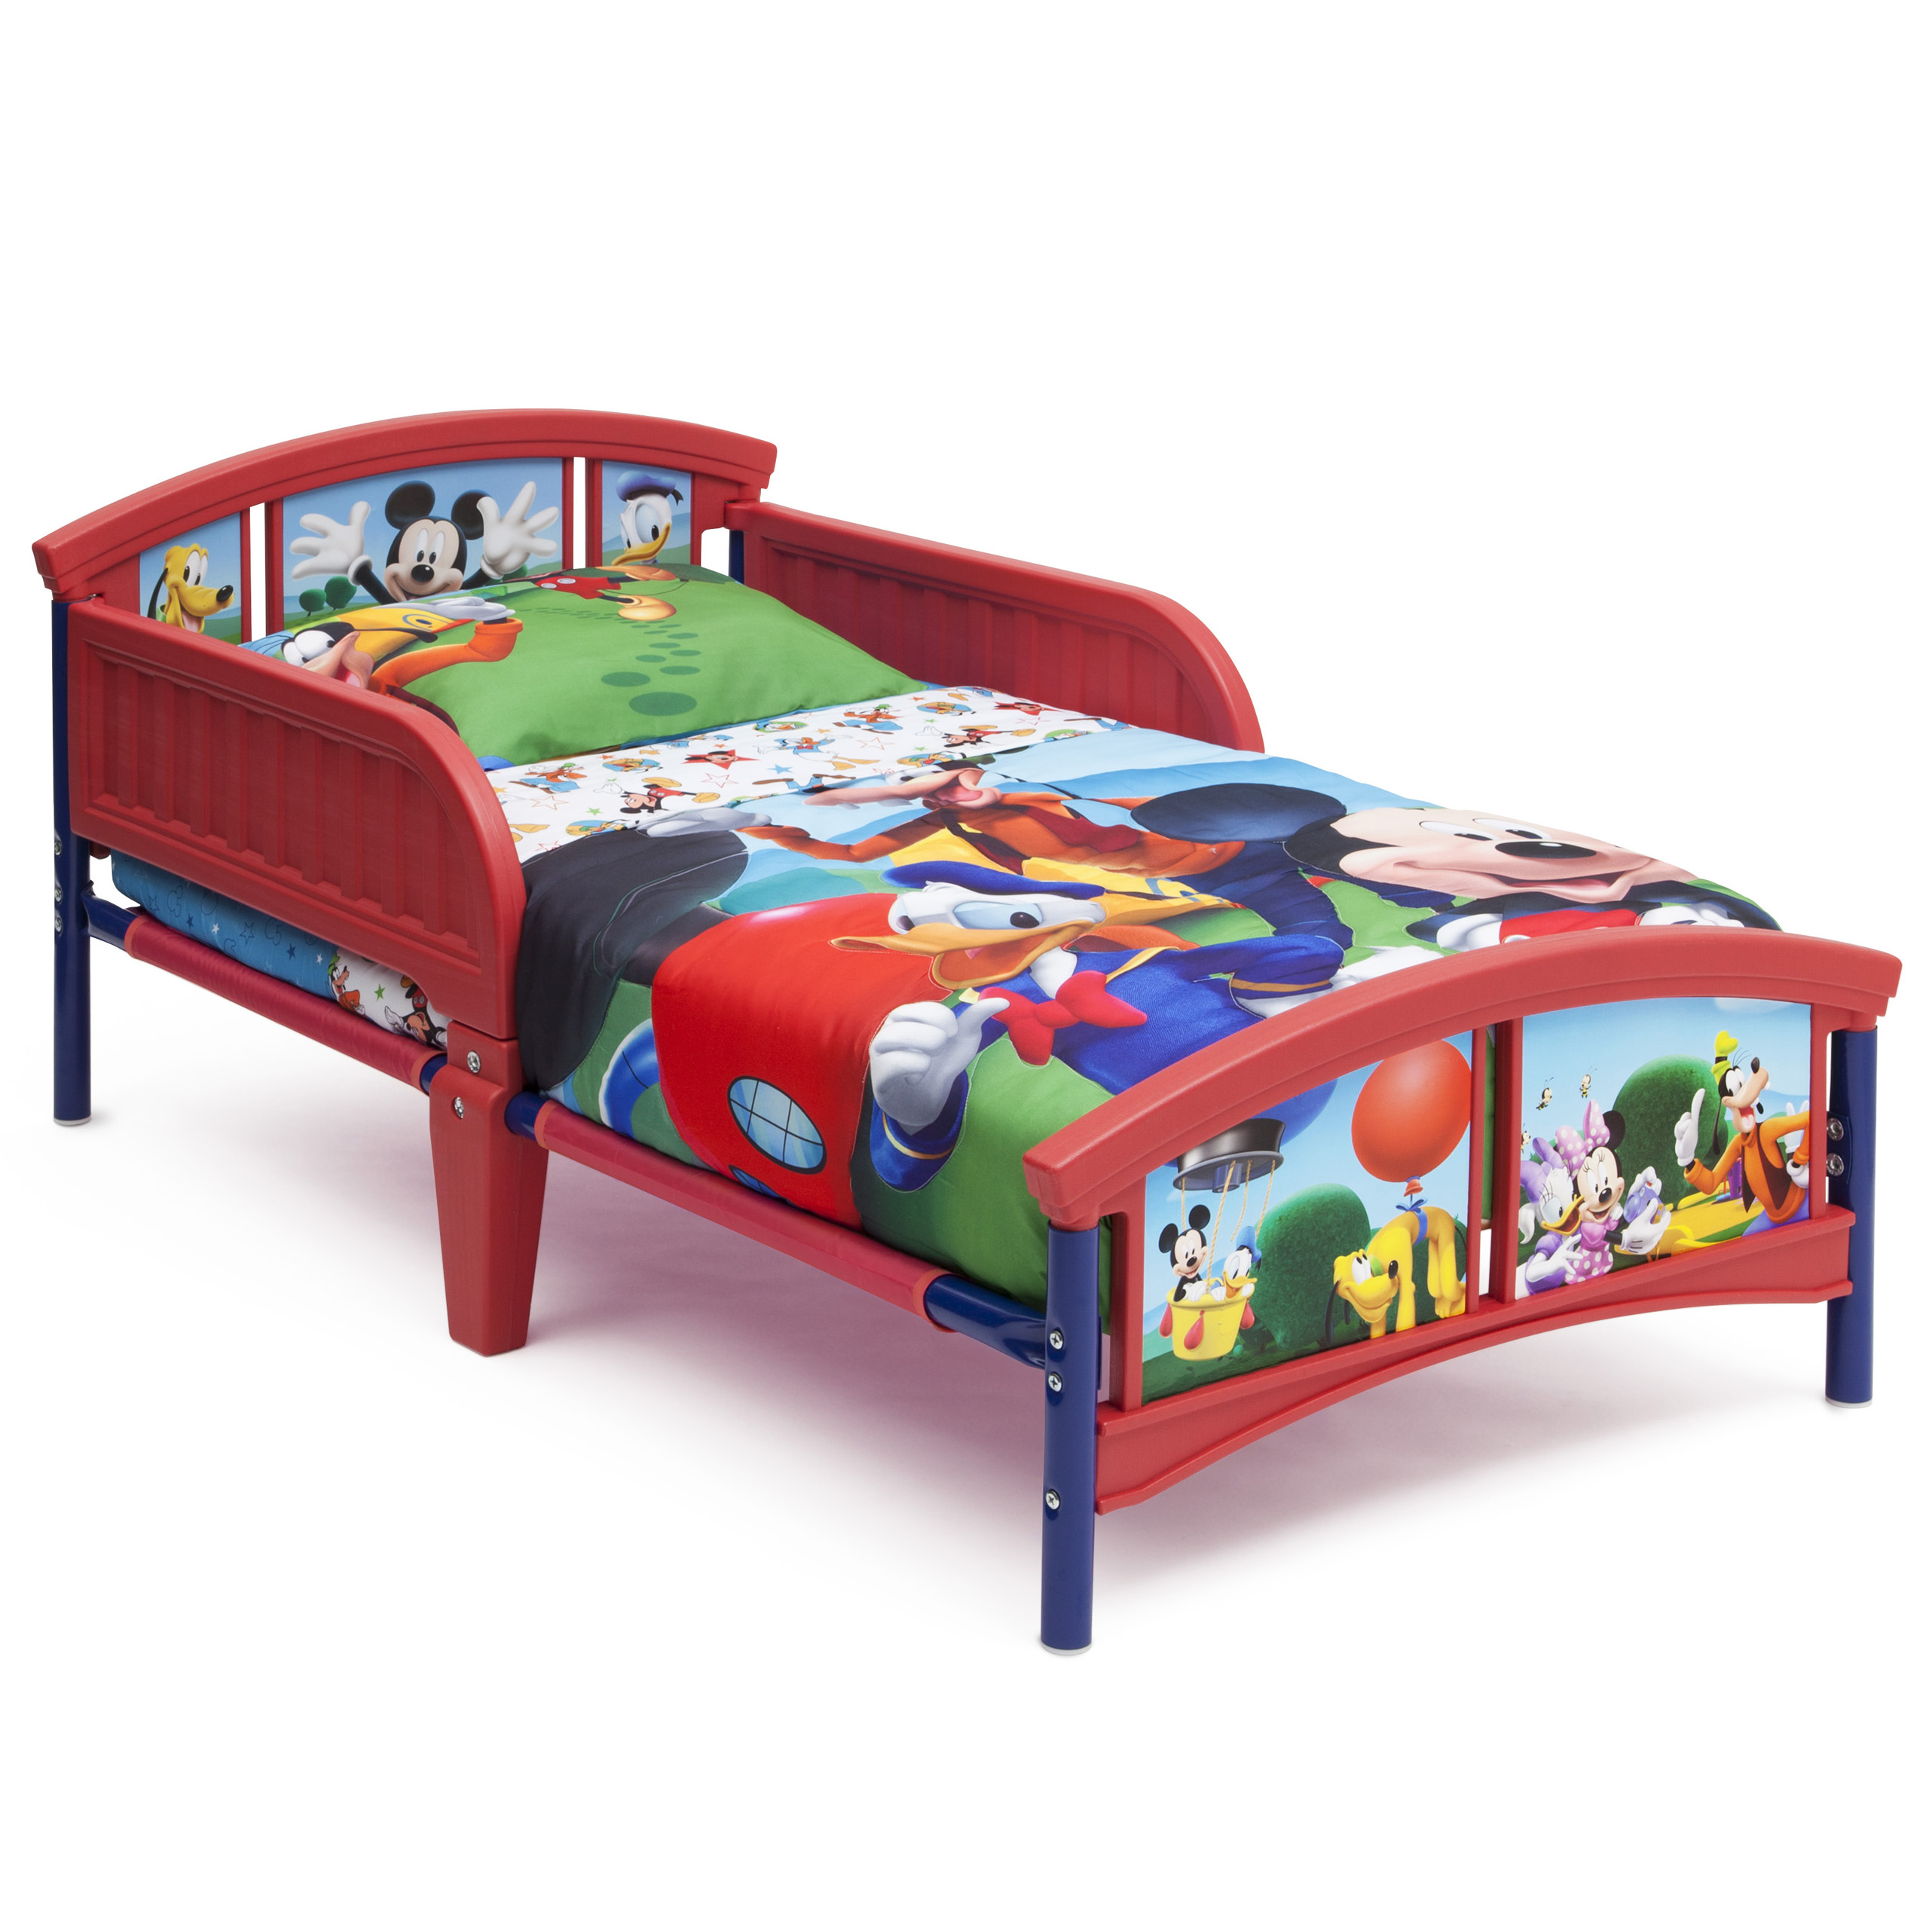 Mickey Mouse Plastic Toddler Bed - Walmart.com